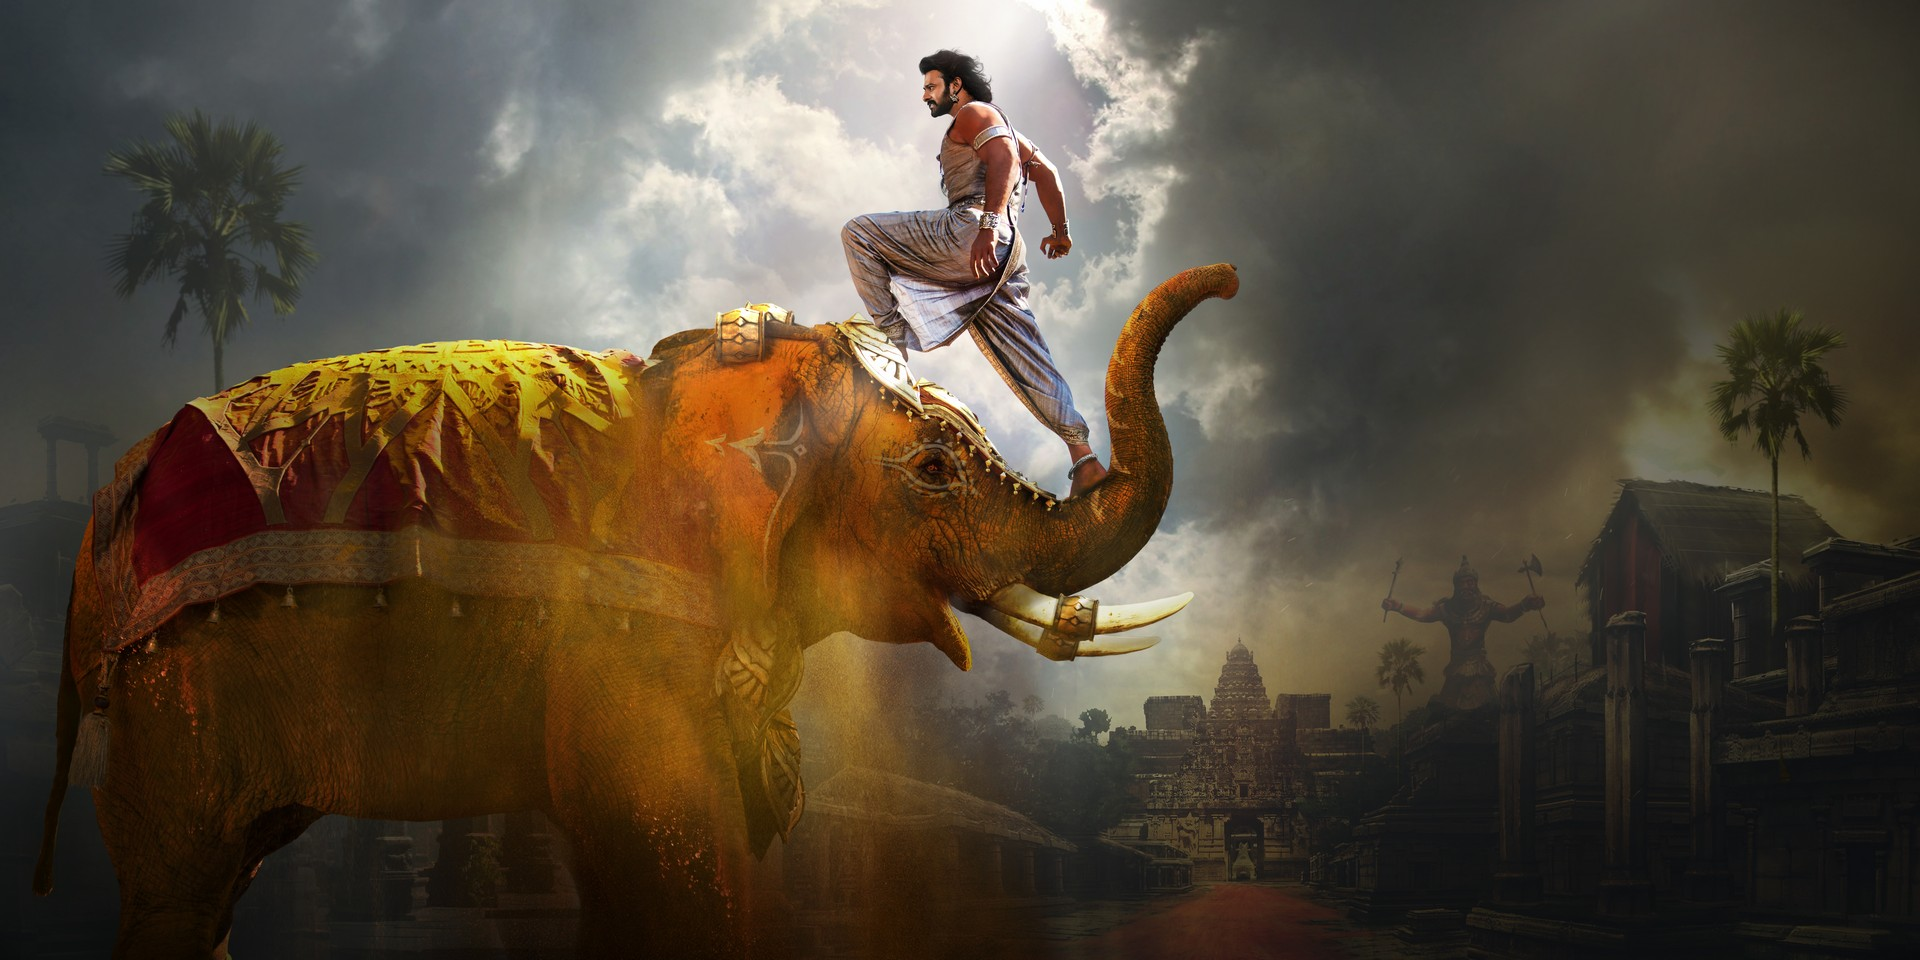 Baahubali 2: The Conclusion (2017) image